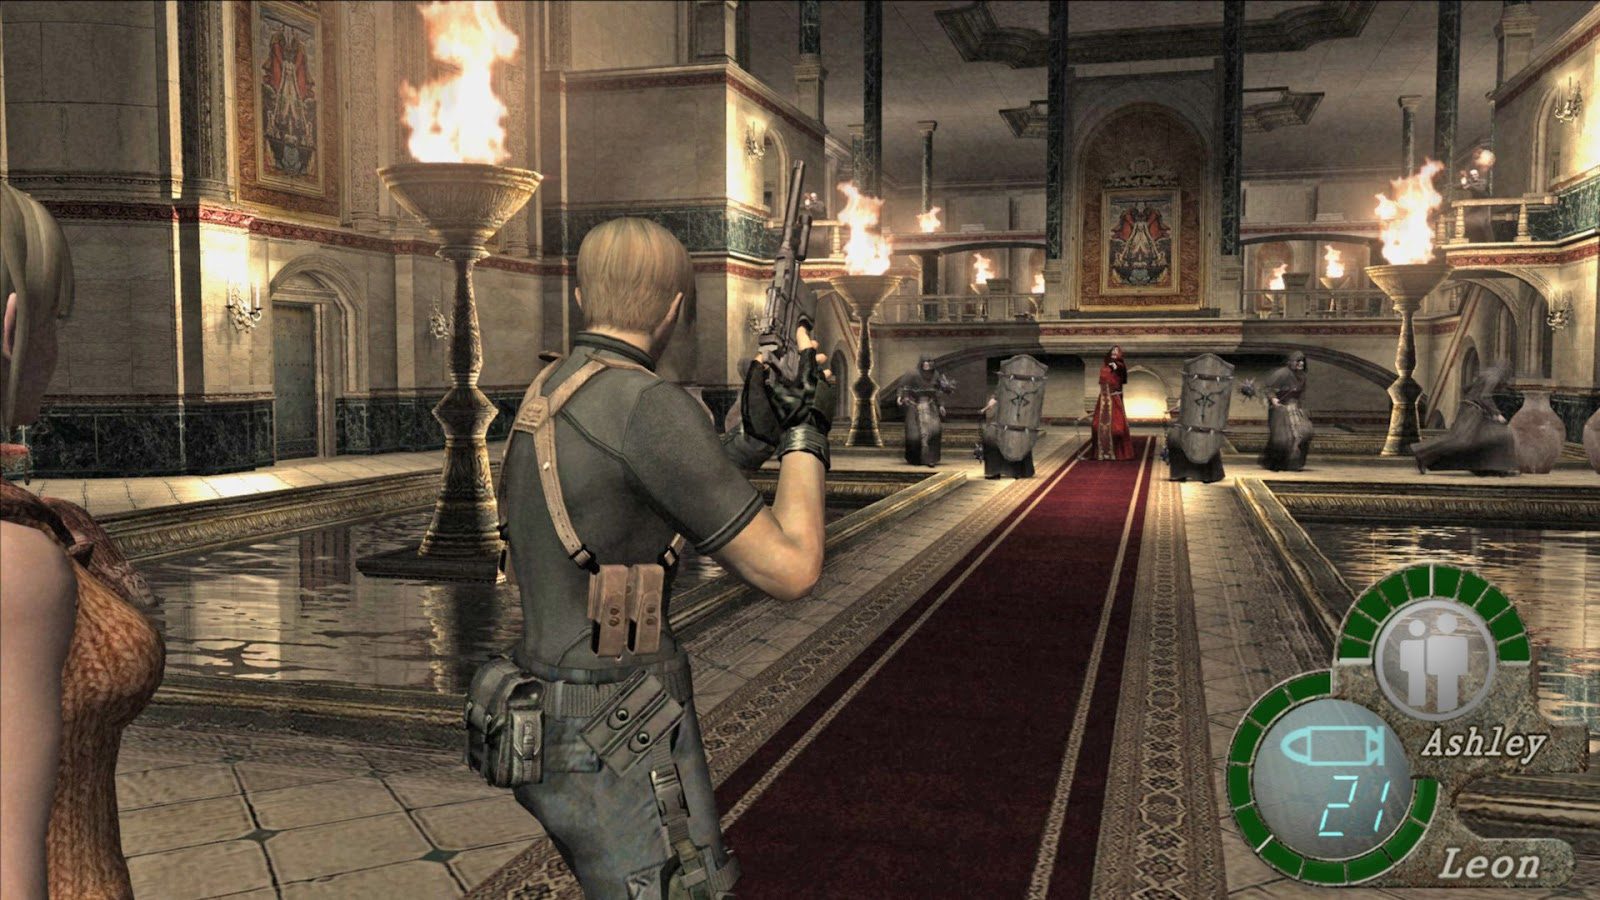 That one really hard castle room in Resident Evil 4.